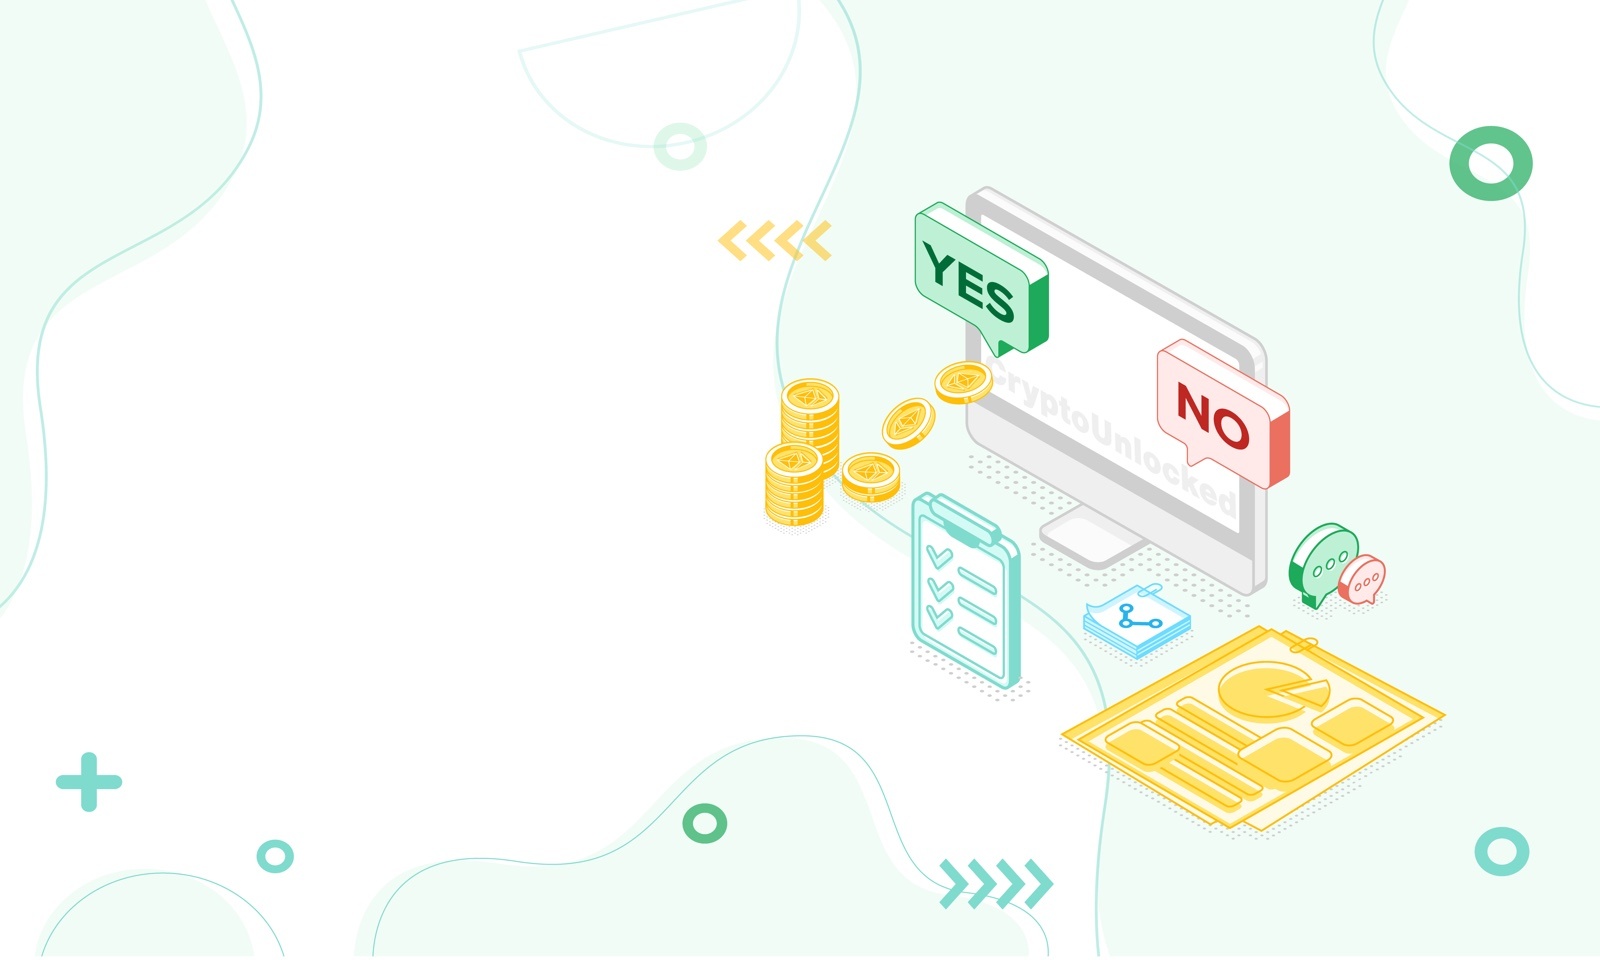 WeTrust - Financial Inclusion through Decentralized Technology